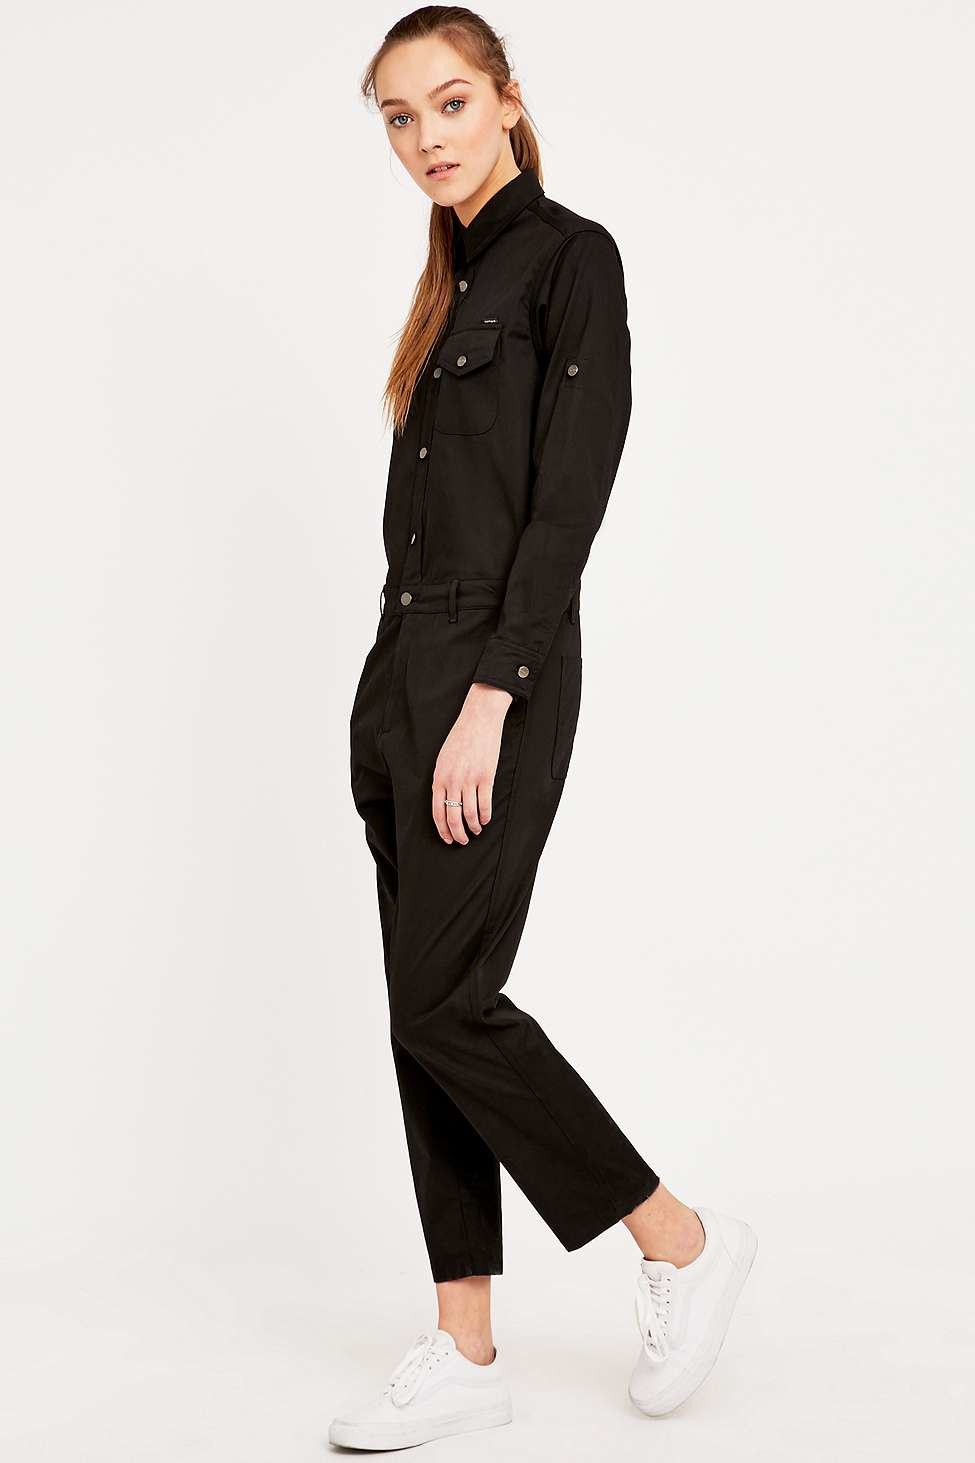 Carhartt Black Jill Boiler Suit In Black Lyst